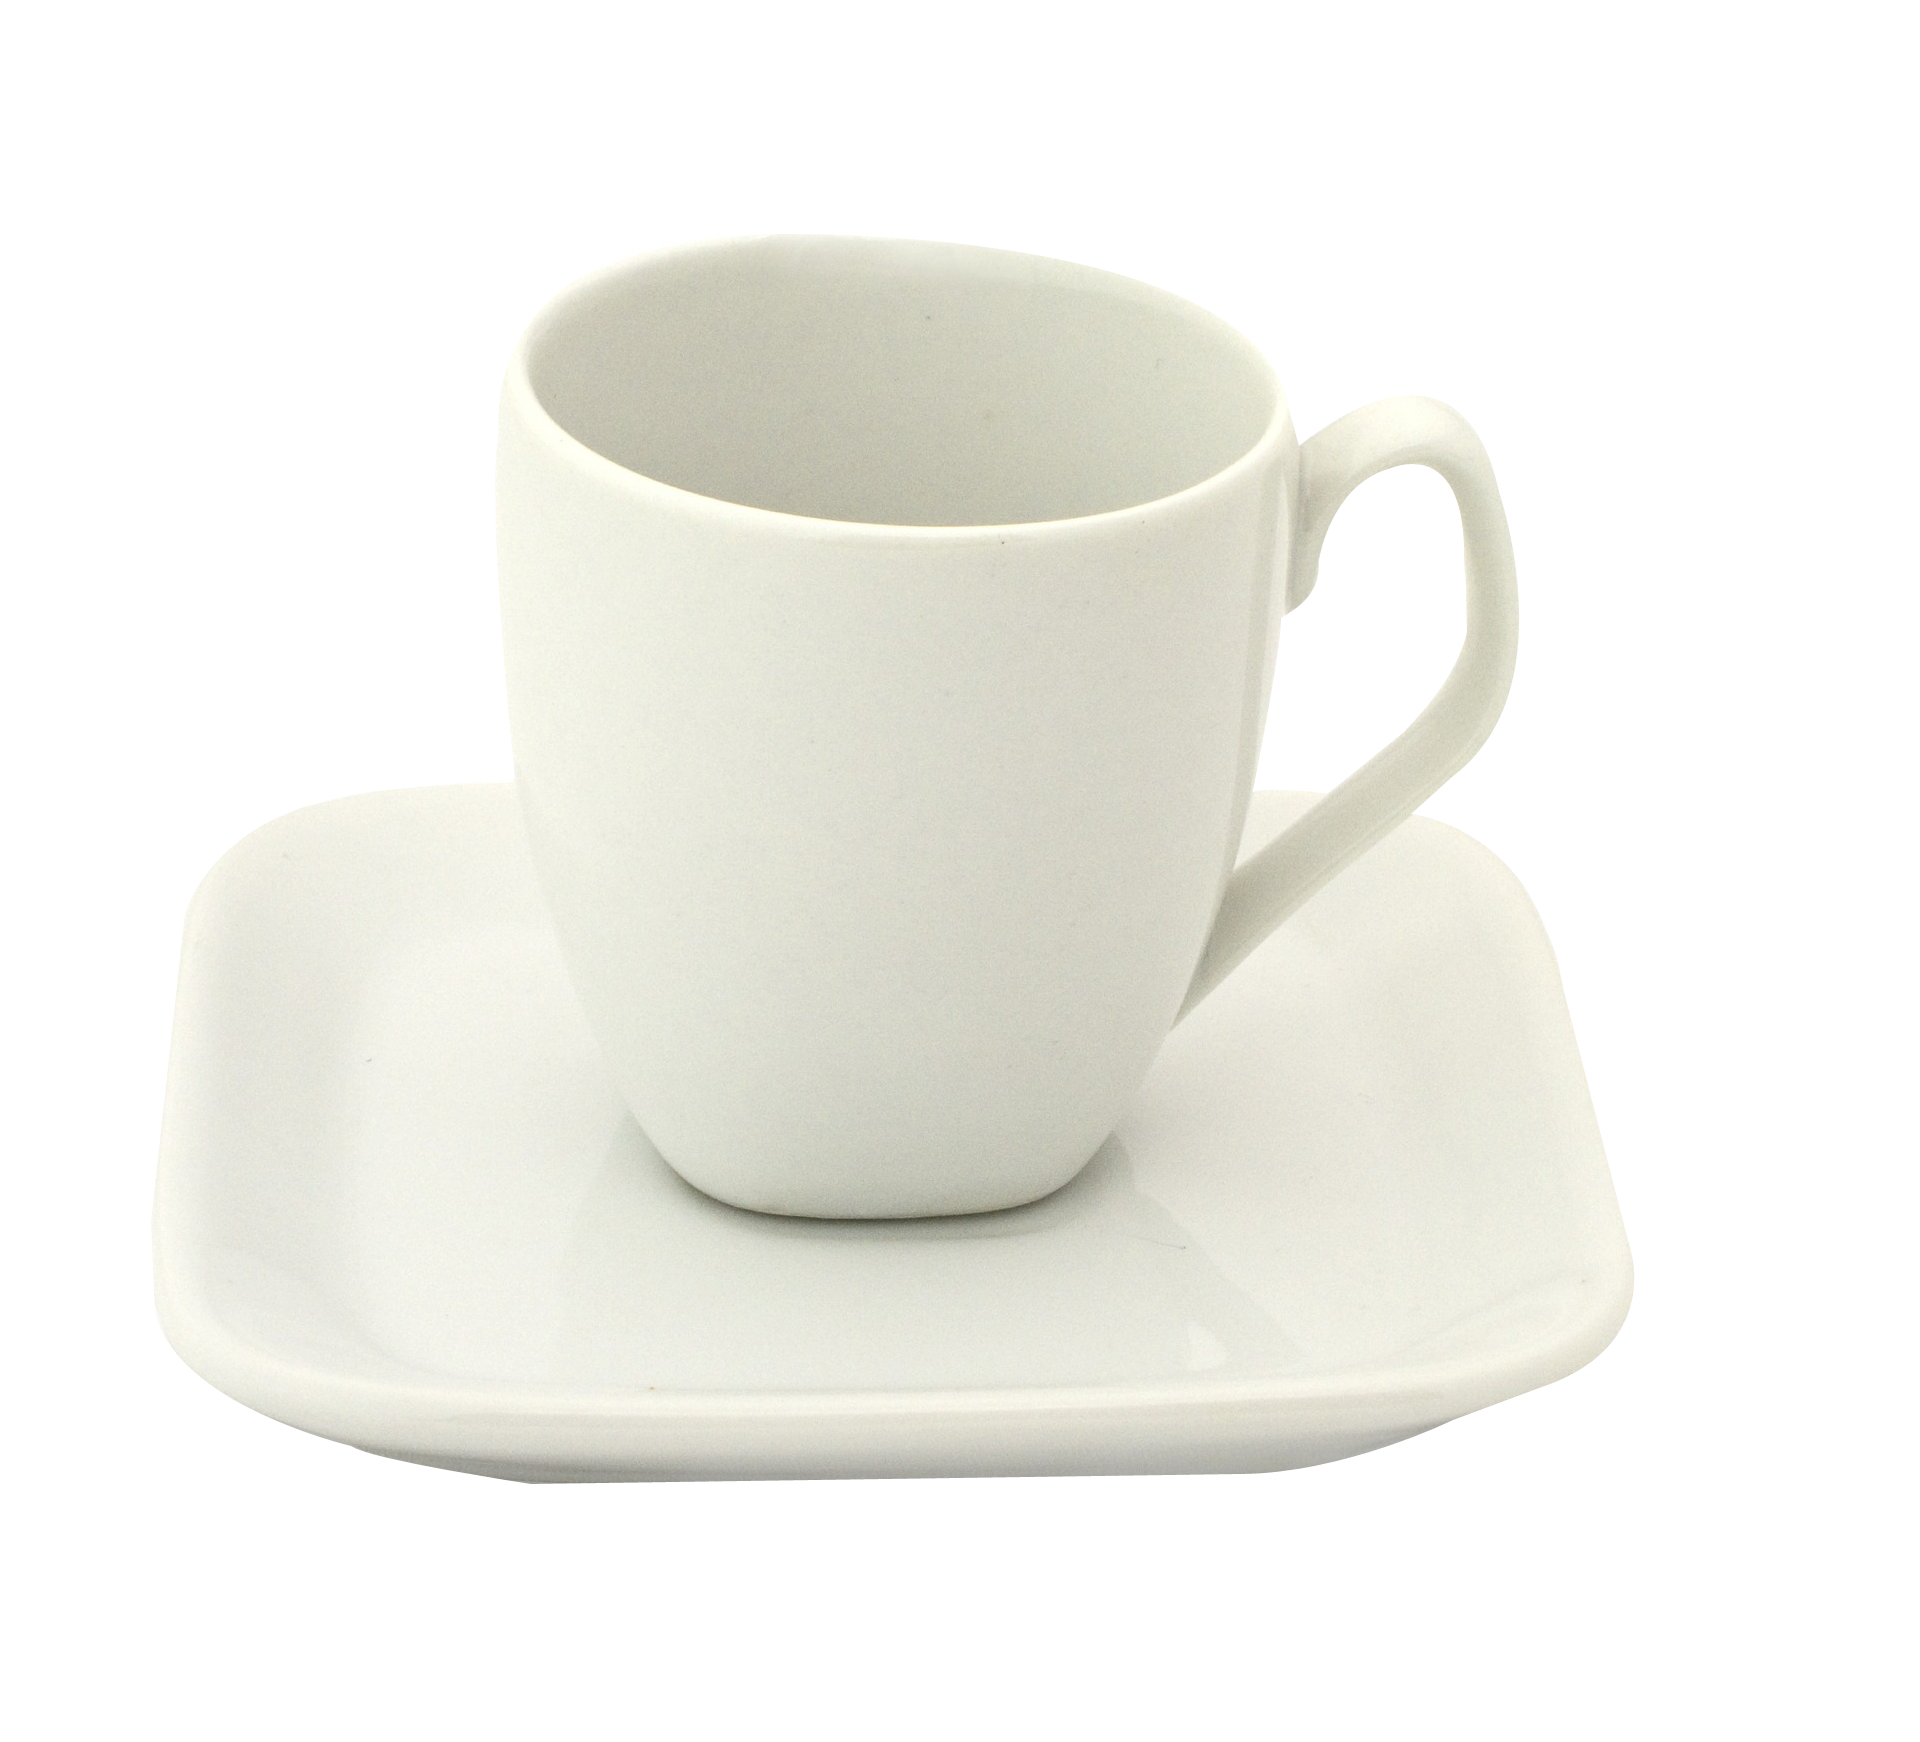 Cup PNG-PlusPNG.com-1920 - Cup PNG